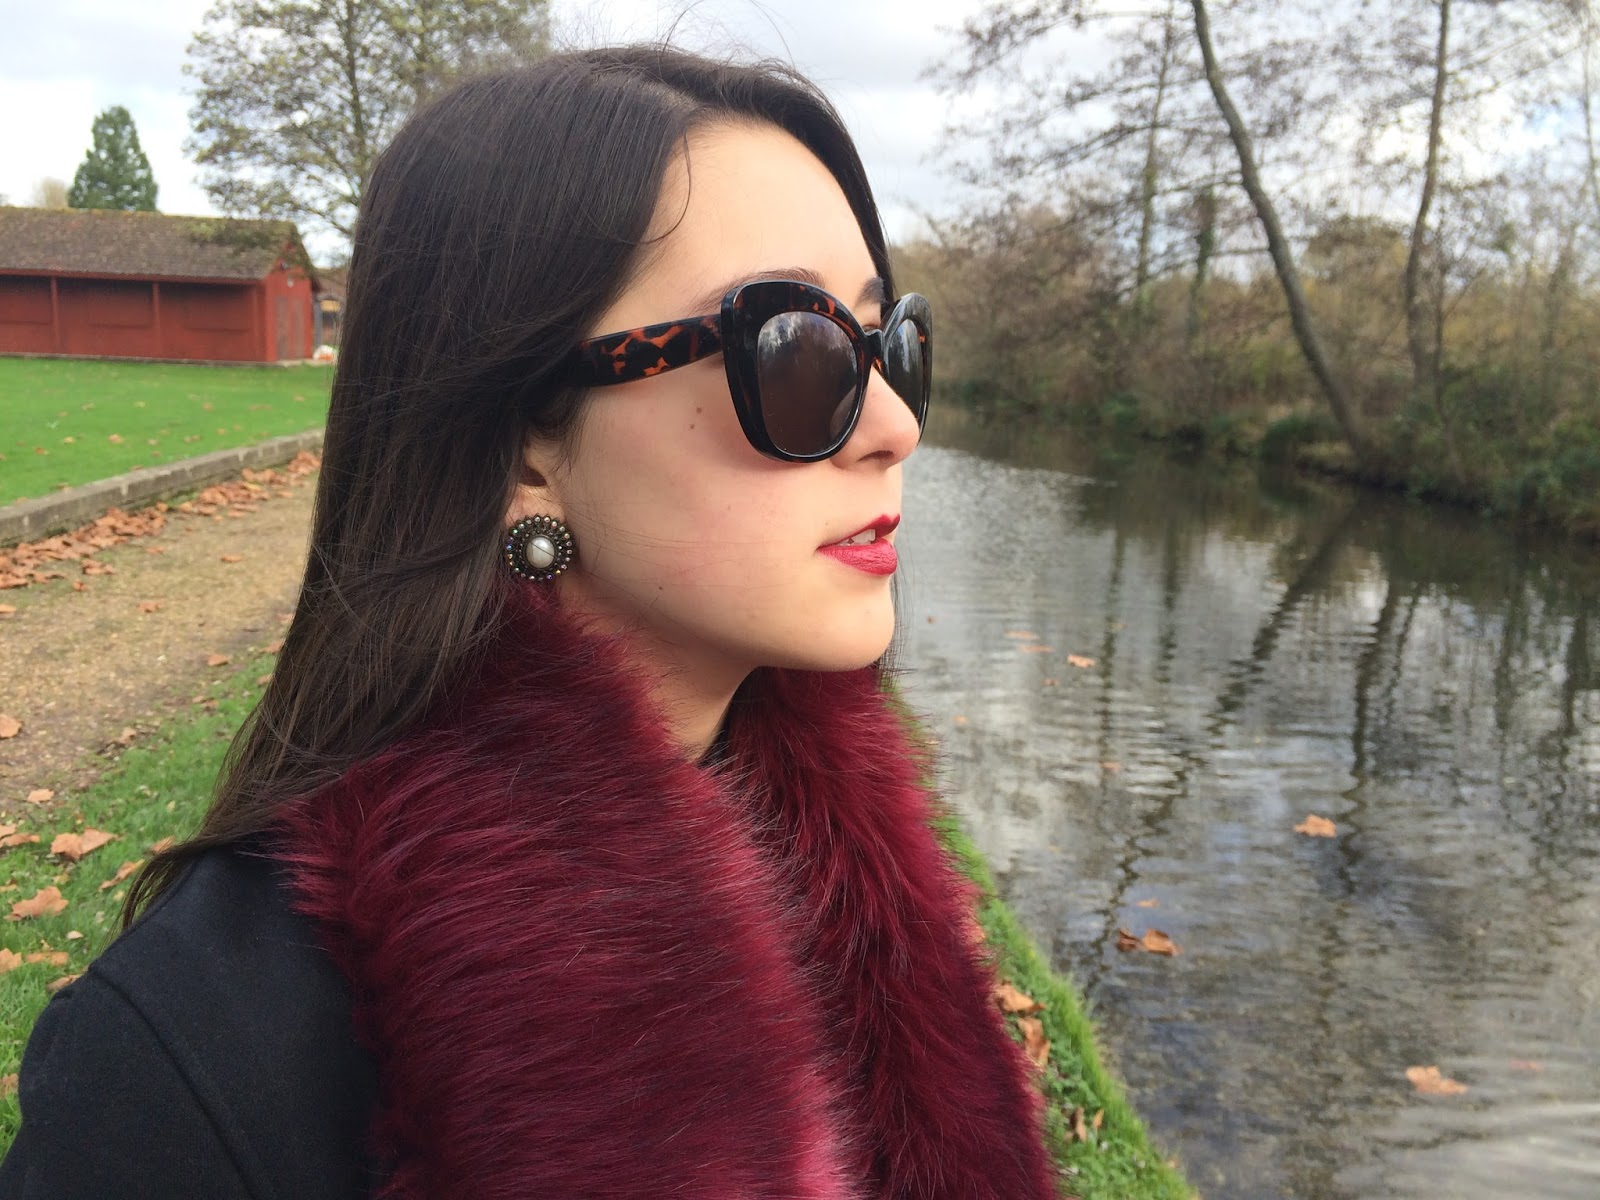 details, ootd, outfit, look, inspiration, fashion blogger, accessories, fur stole, cat eye sunglasses, earrings